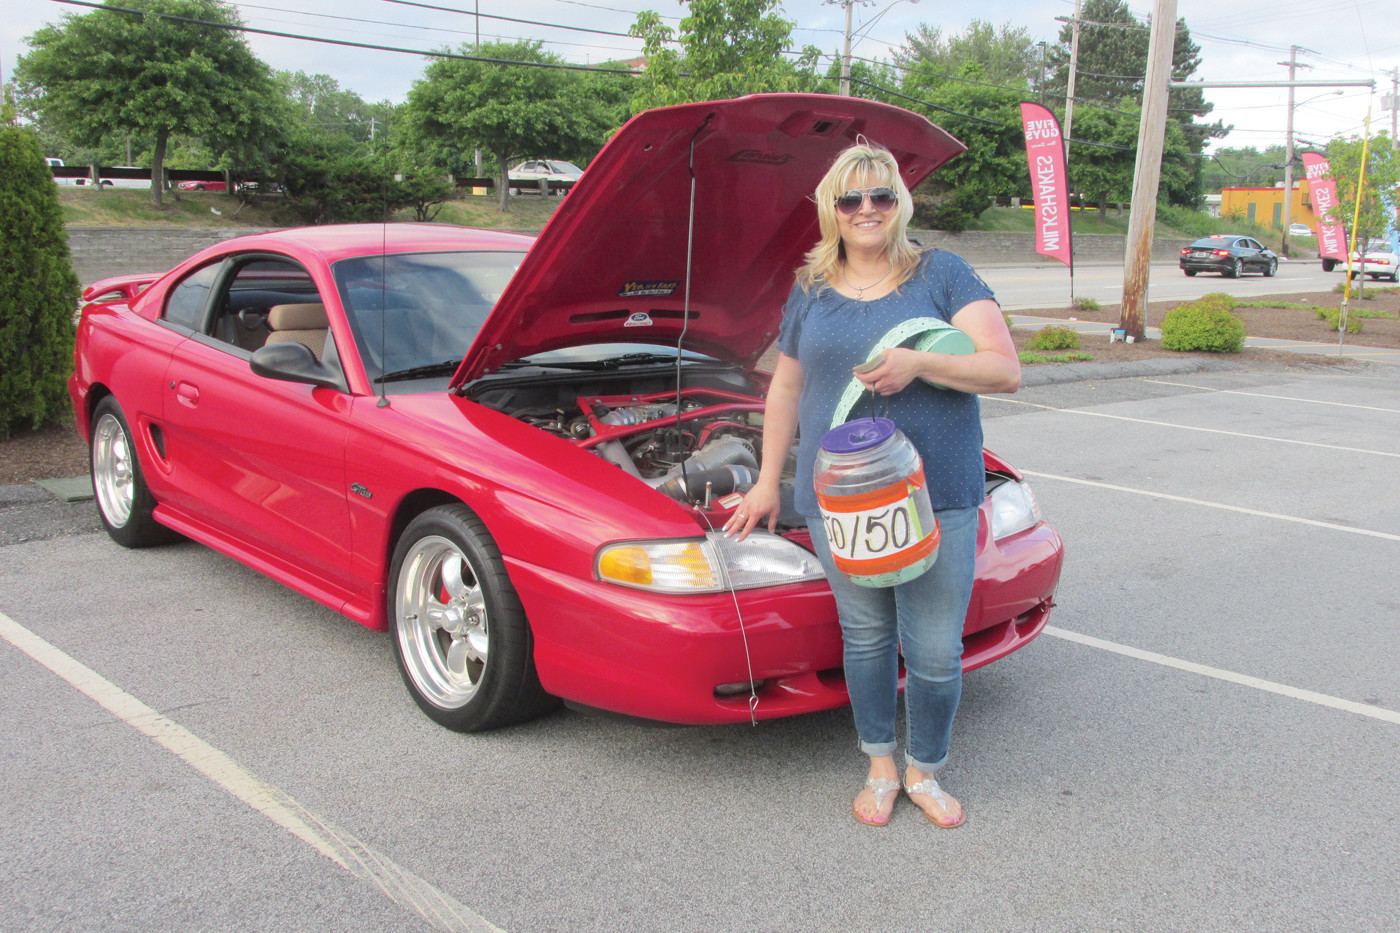 VALUABLE VOL: Tina Marie Brodeur is all smiles as she stands by her red 1998 For Mustang and holds the 50/50 raffle container and tickets that she has volunteered to head up for the JSM's 2018 Cruizin' for a Cause.